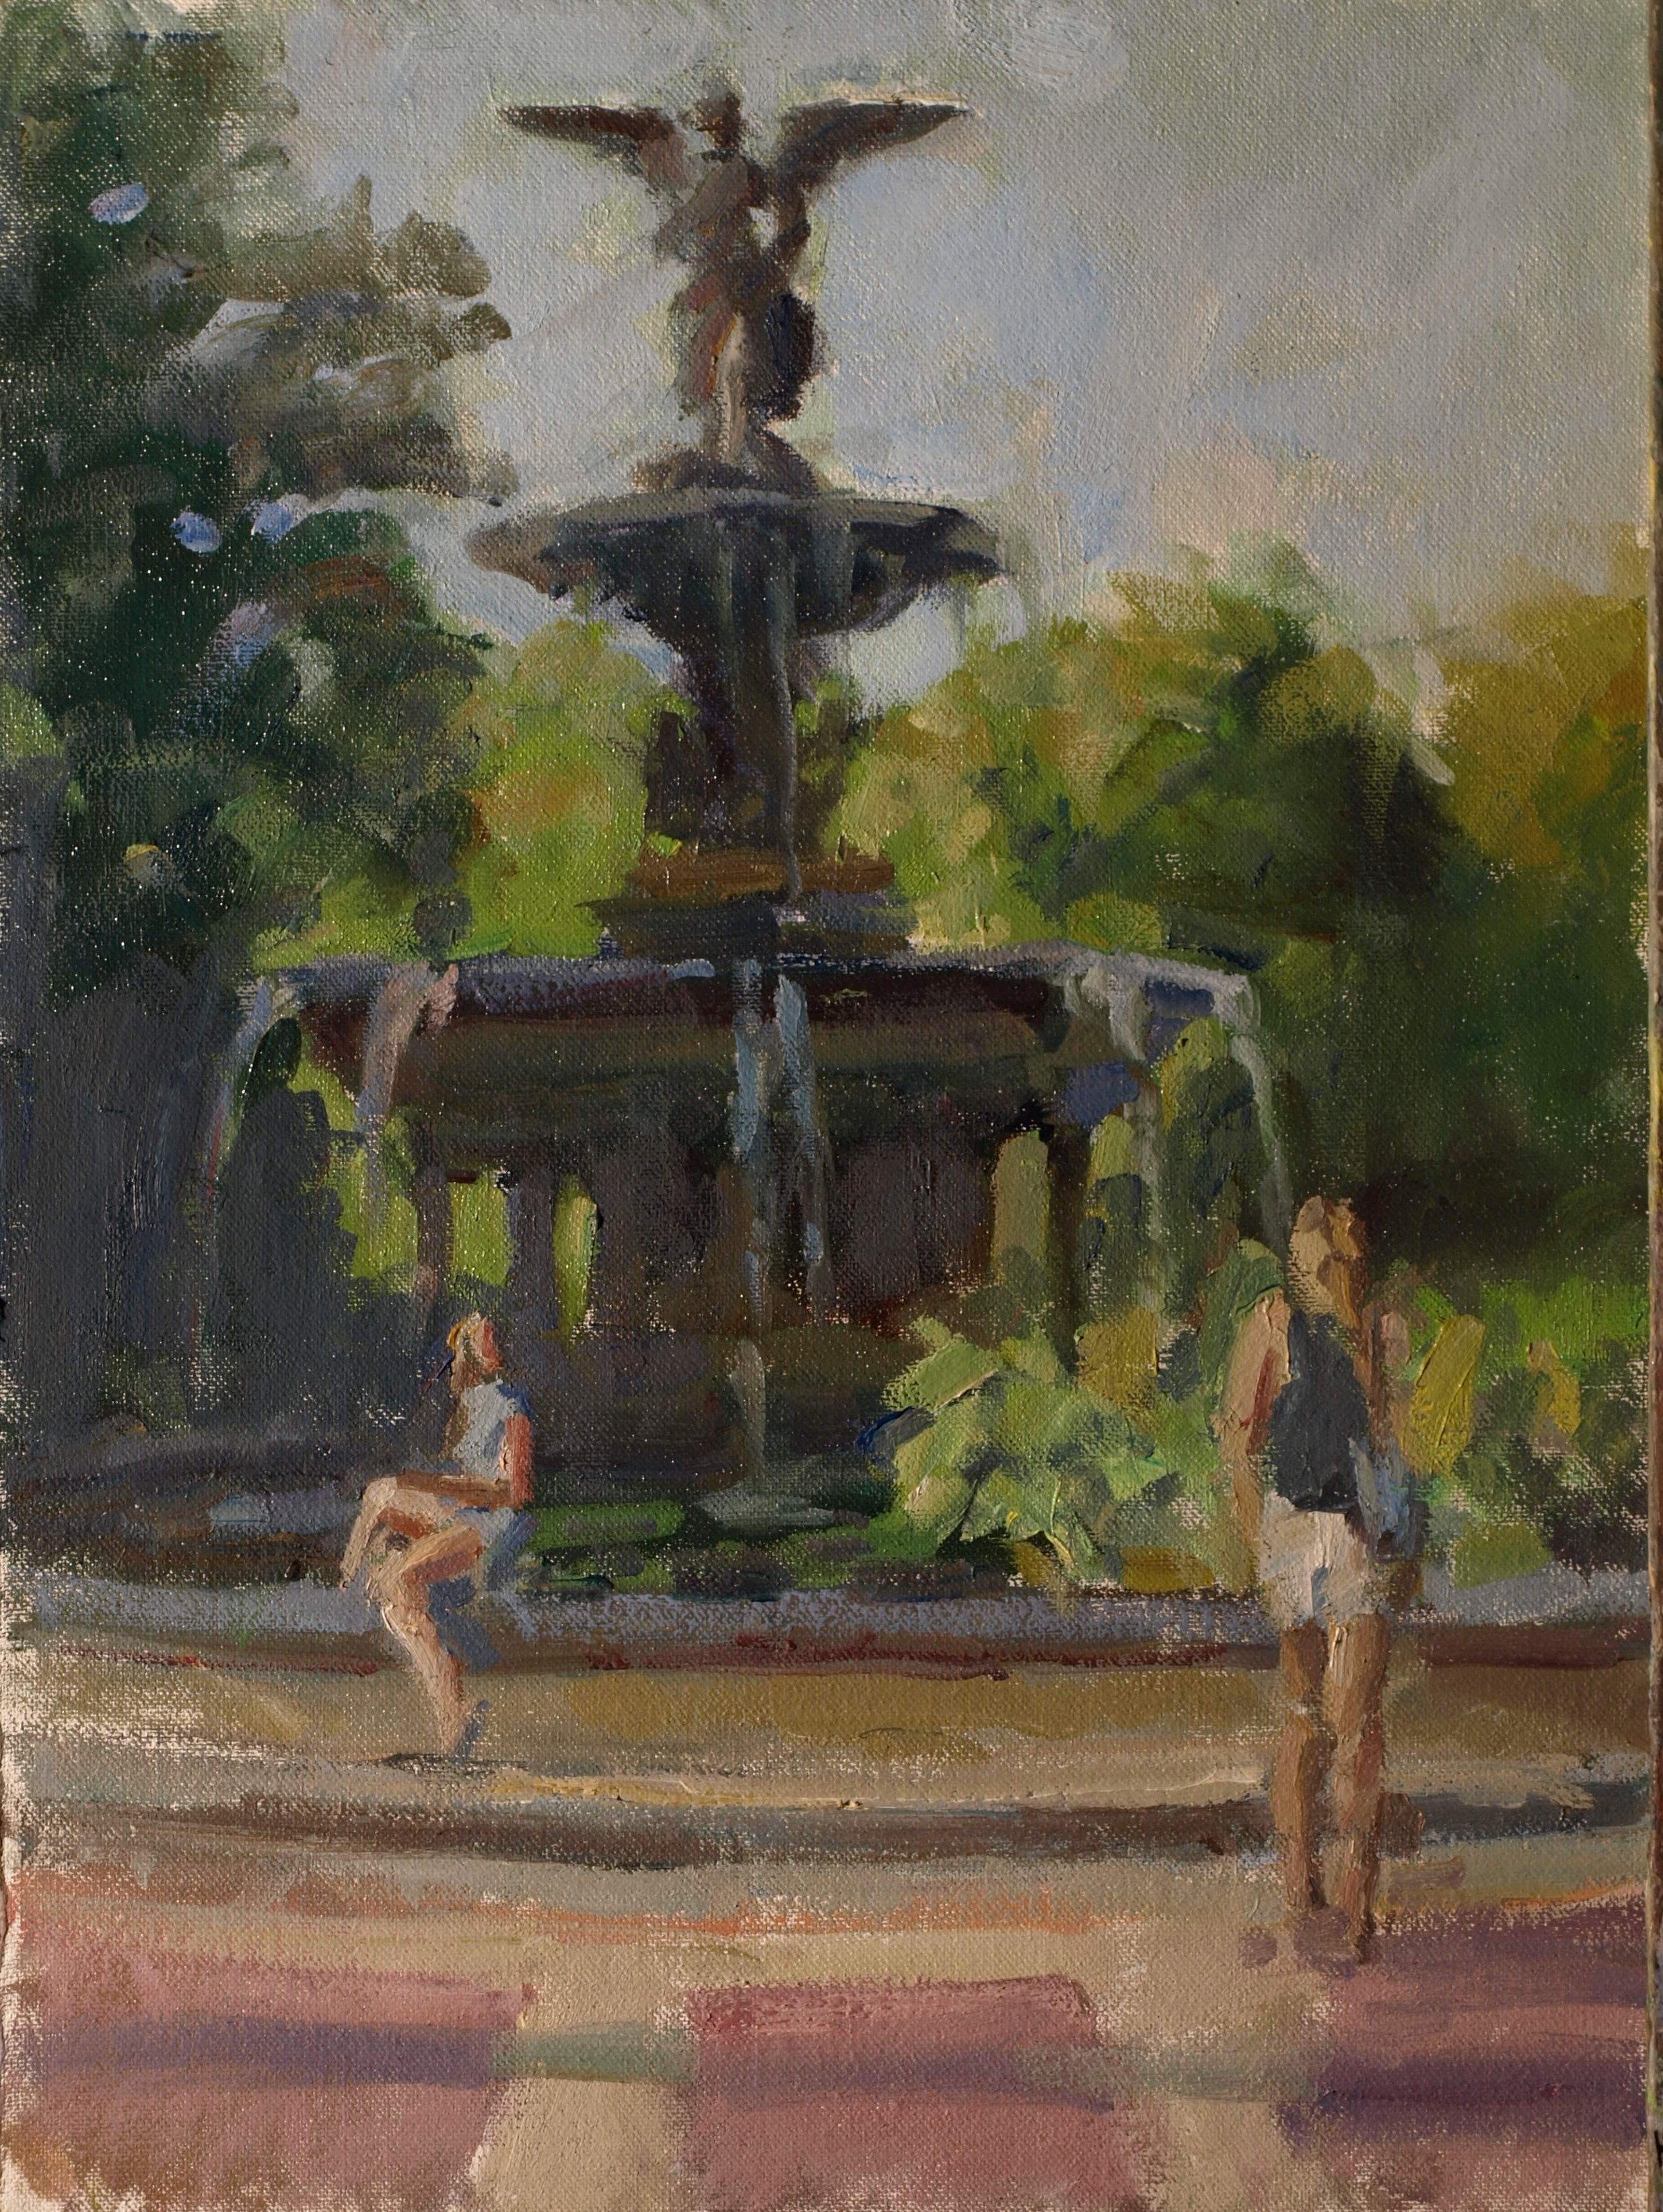 Bethesda Fountain, Oil on Canvas on Panel, 16 x 12 Inches, by Susan Grisell, $300